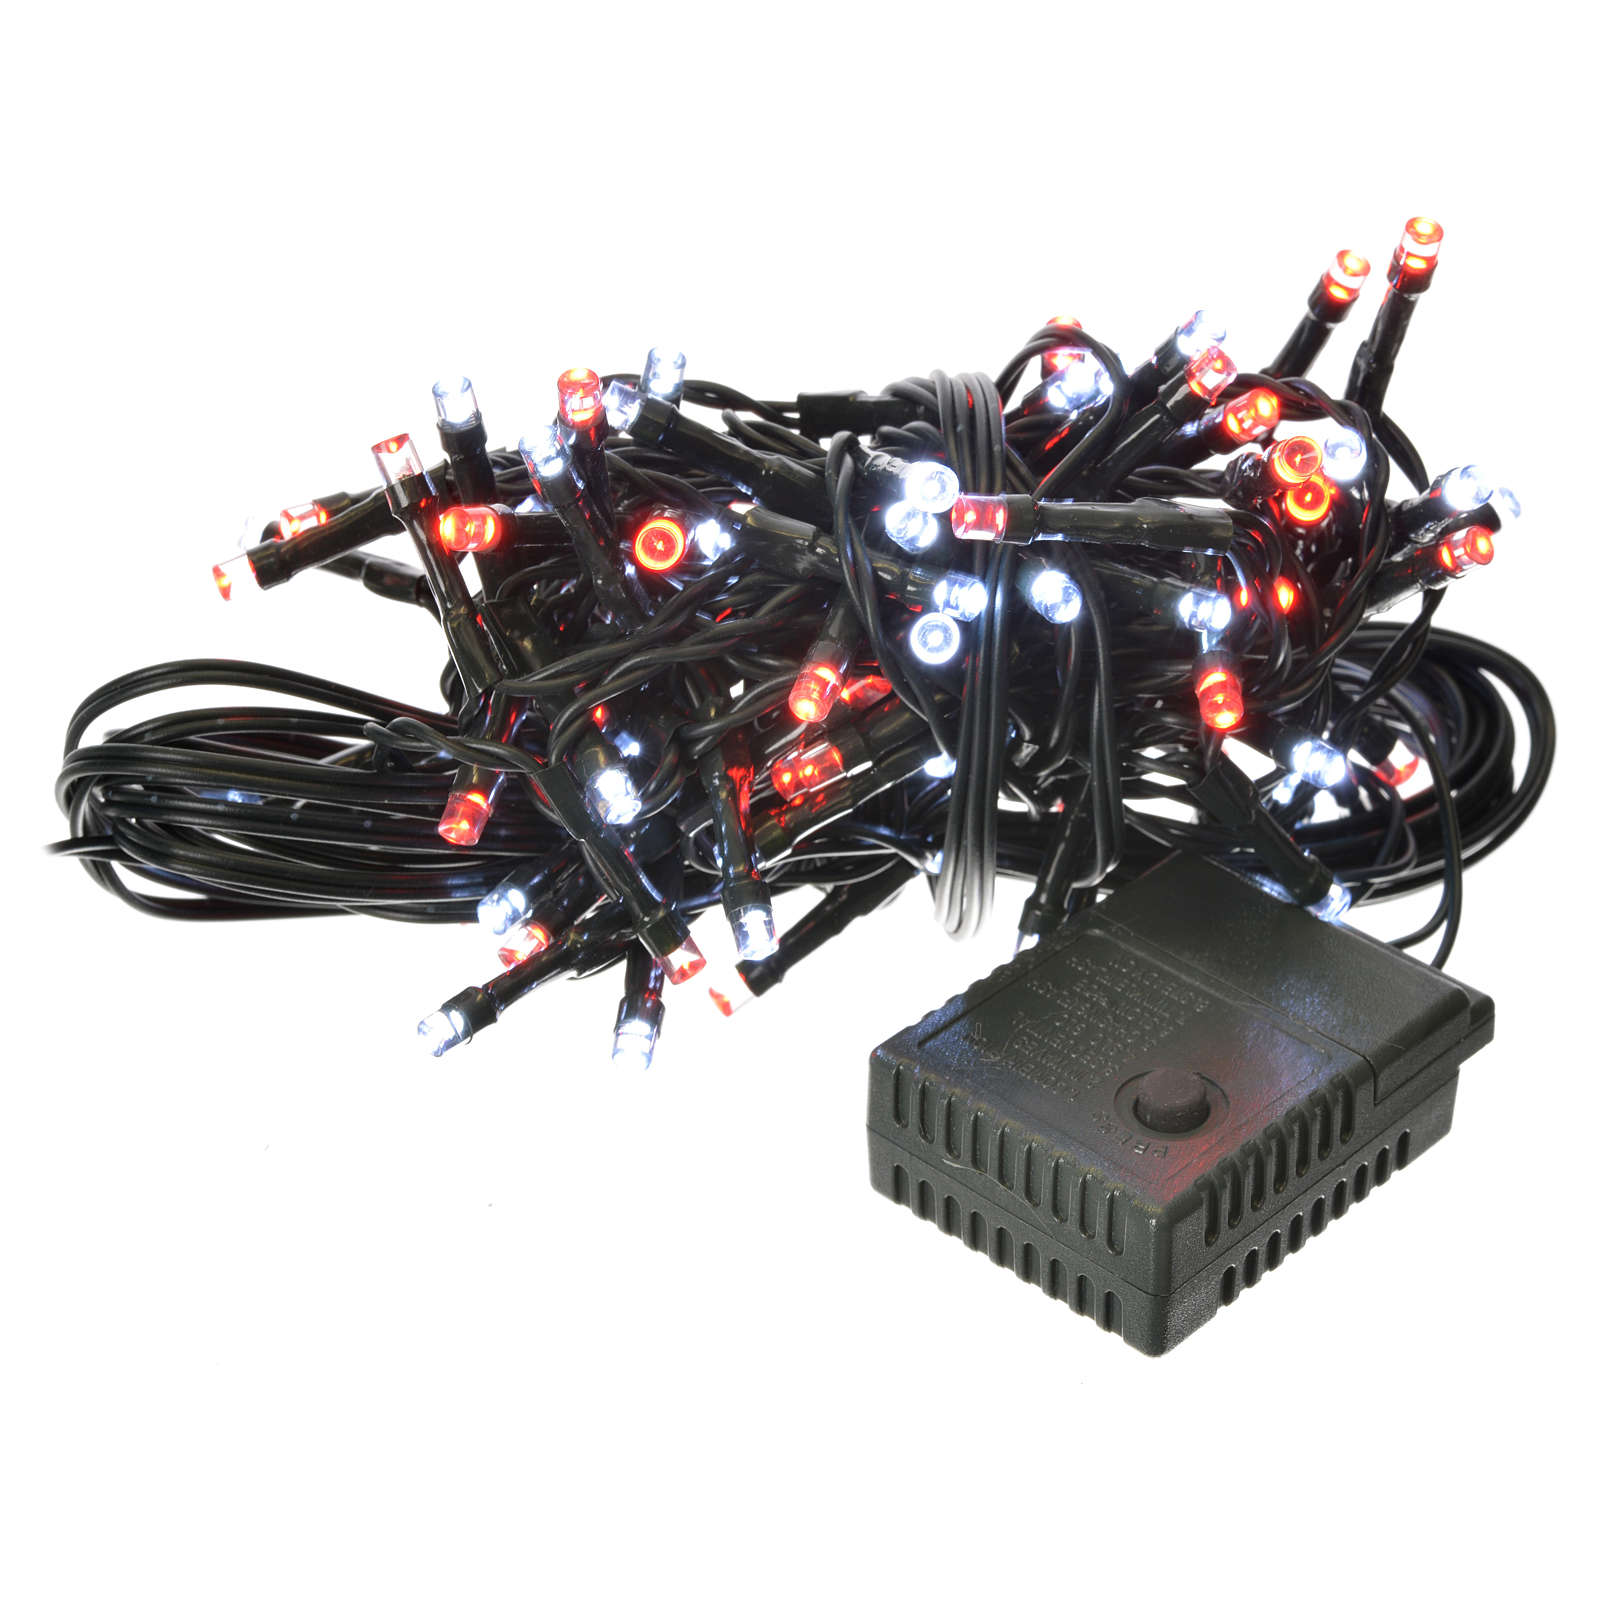 Christmas lights 96 LED, red and white, for outdoor/indoor use, programmable 3